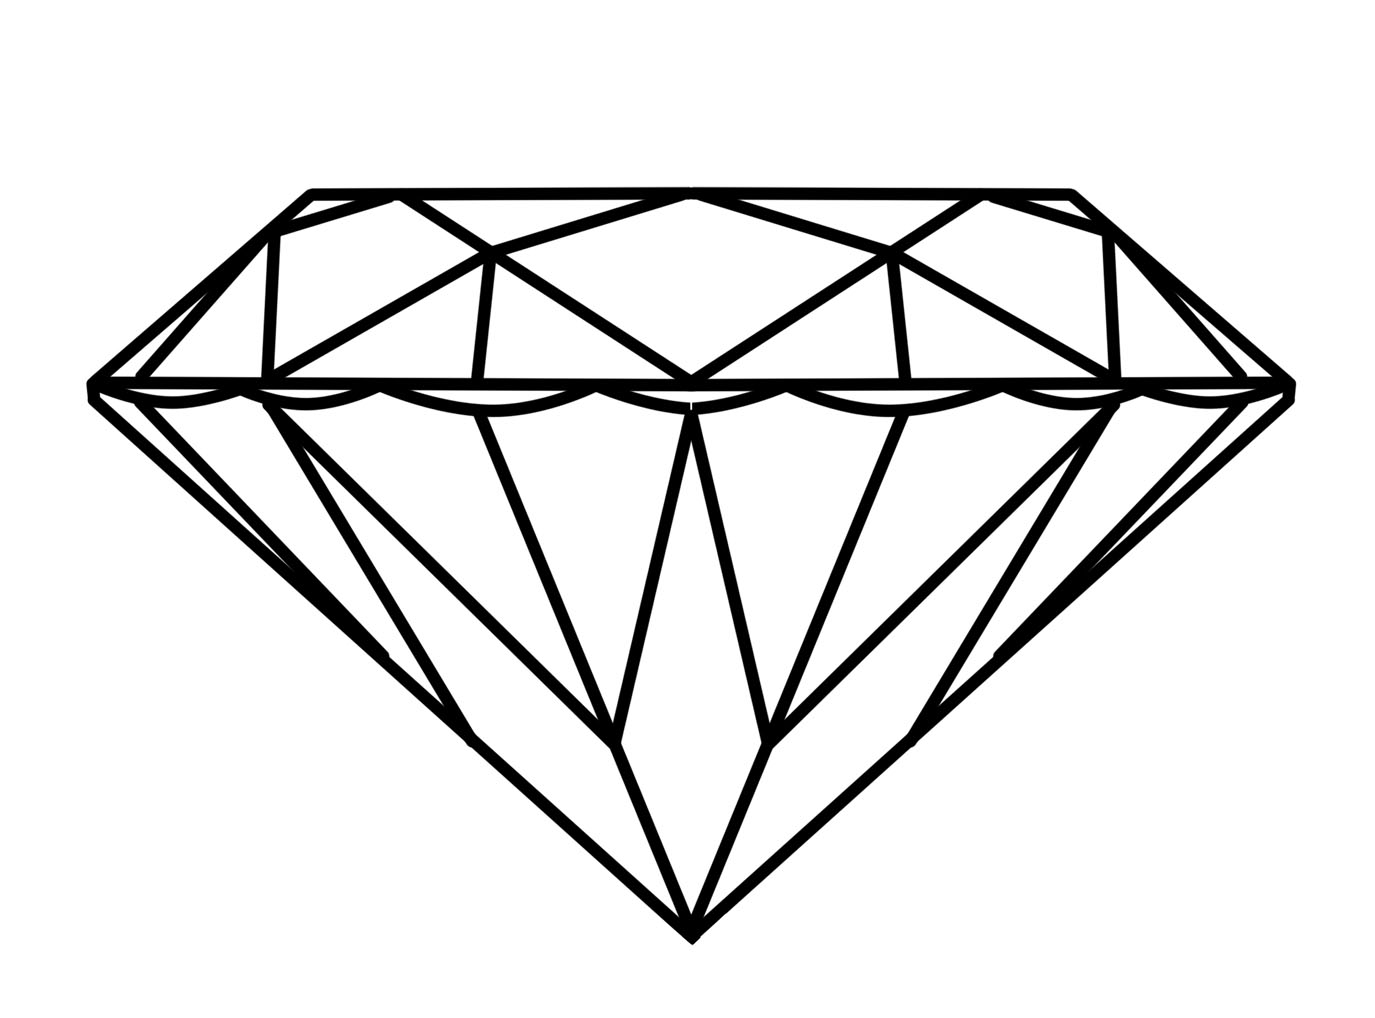 How to // Diamond Drawings | Design Practice